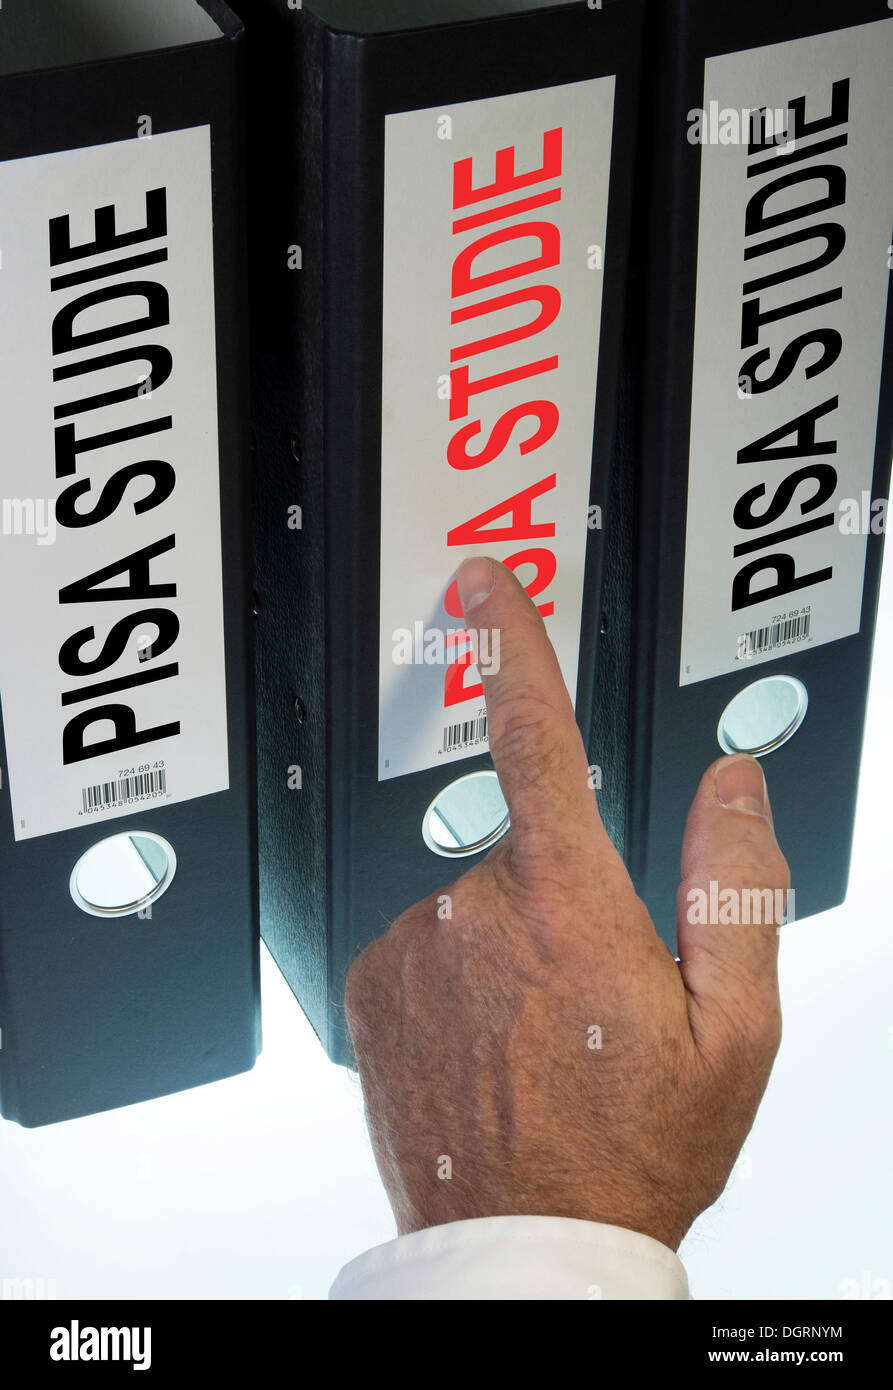 """Hand pointing to a file folder labeled """"PISA"""", German for """"Programme for International Student Assessment, PISA"""" Stock Photo"""